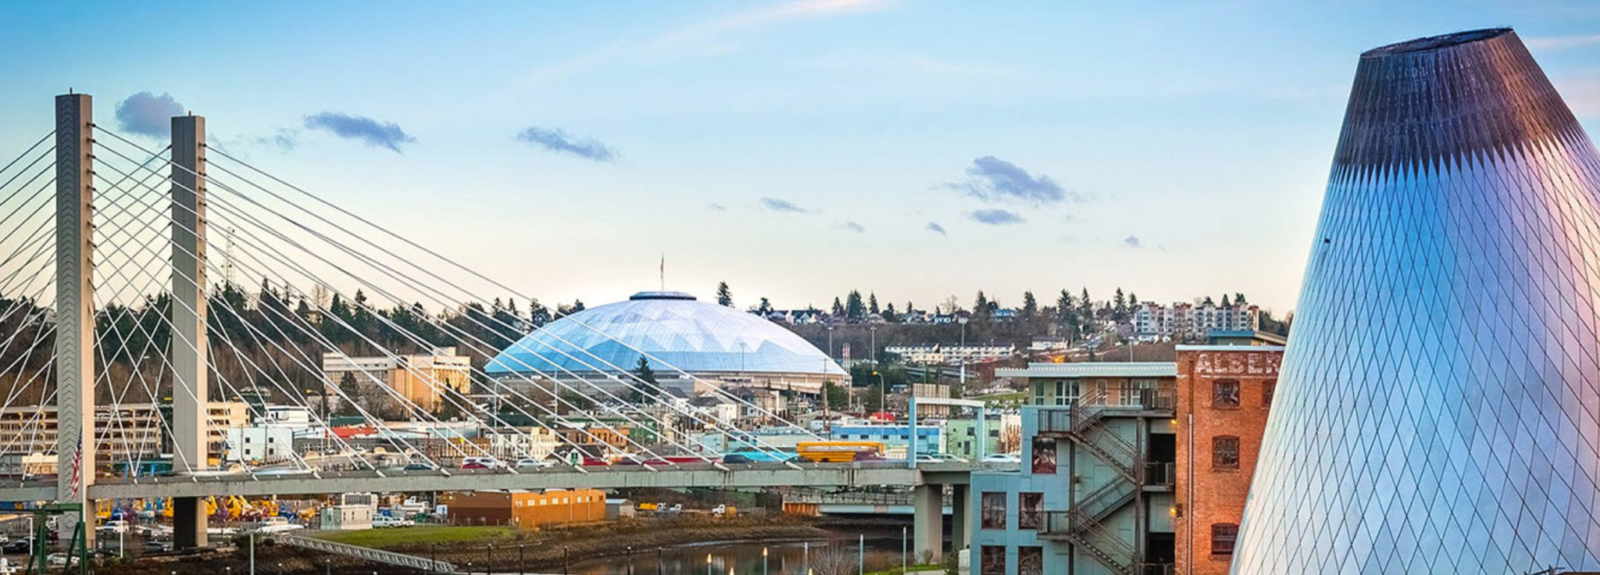 Website development placeholder image of downtown Tacoma